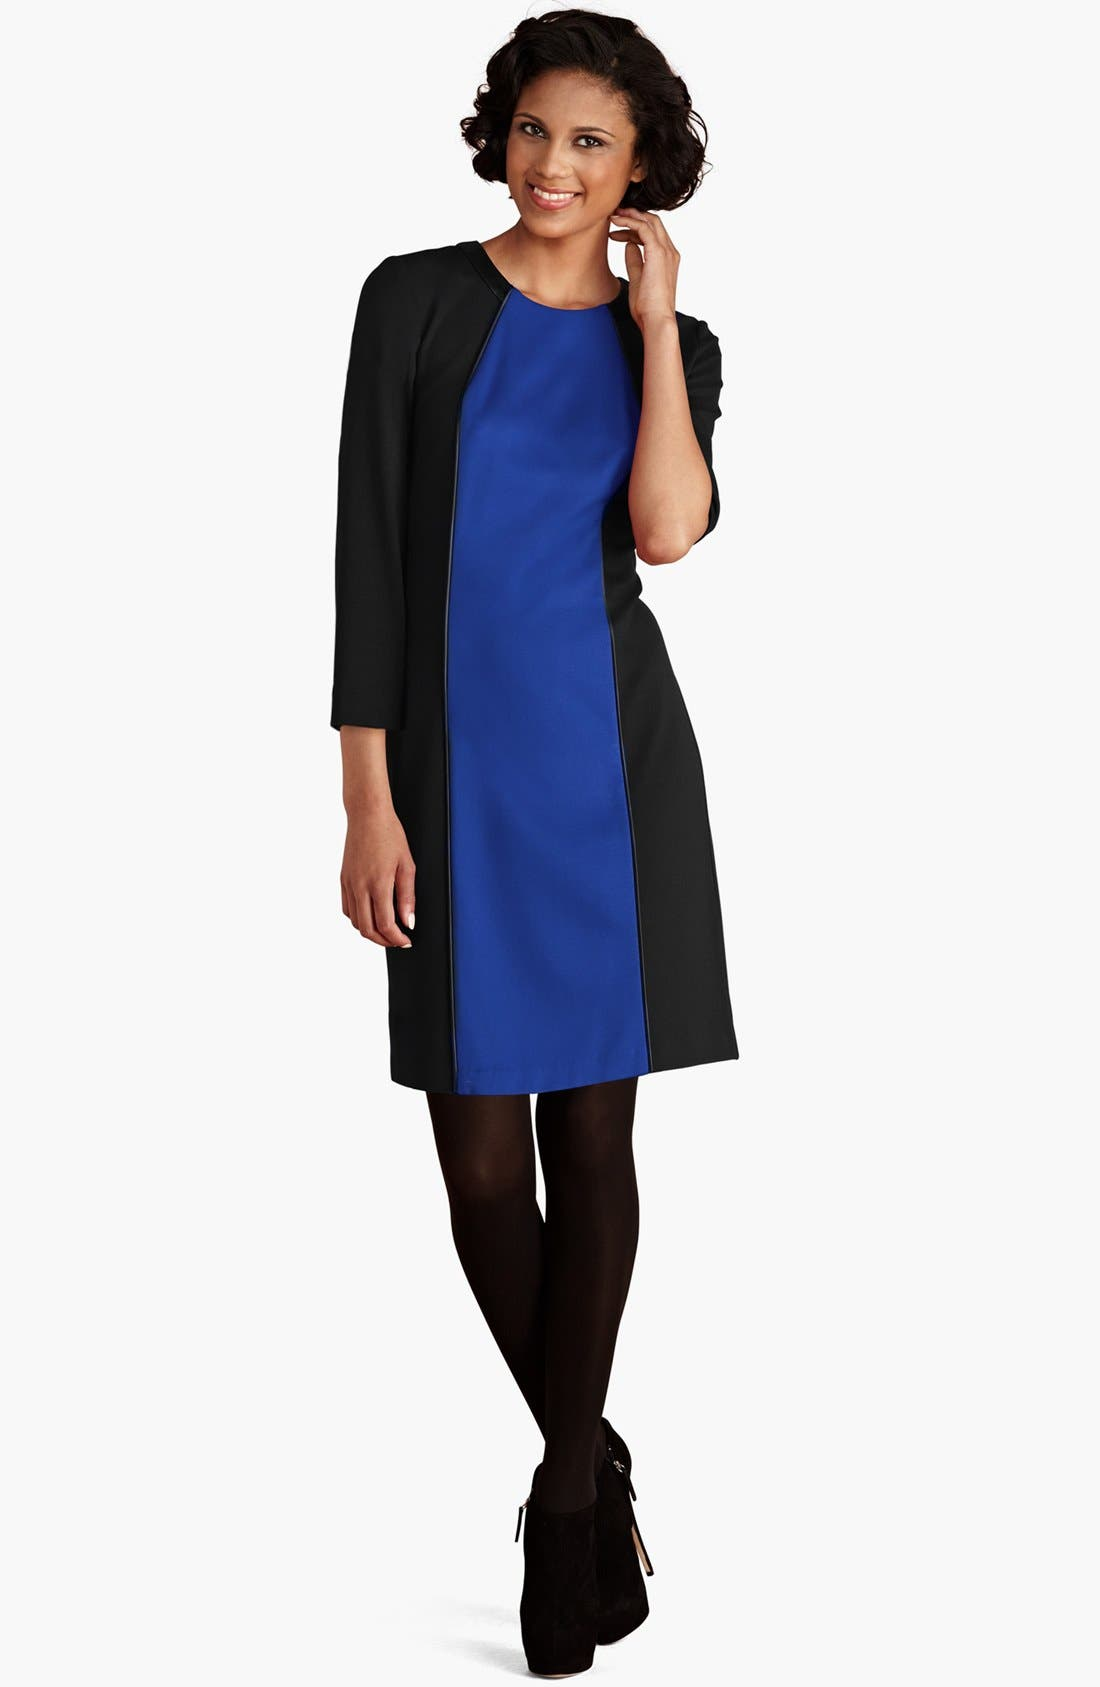 Alternate Image 1 Selected - Donna Morgan Faux Leather Trim Colorblock Dress